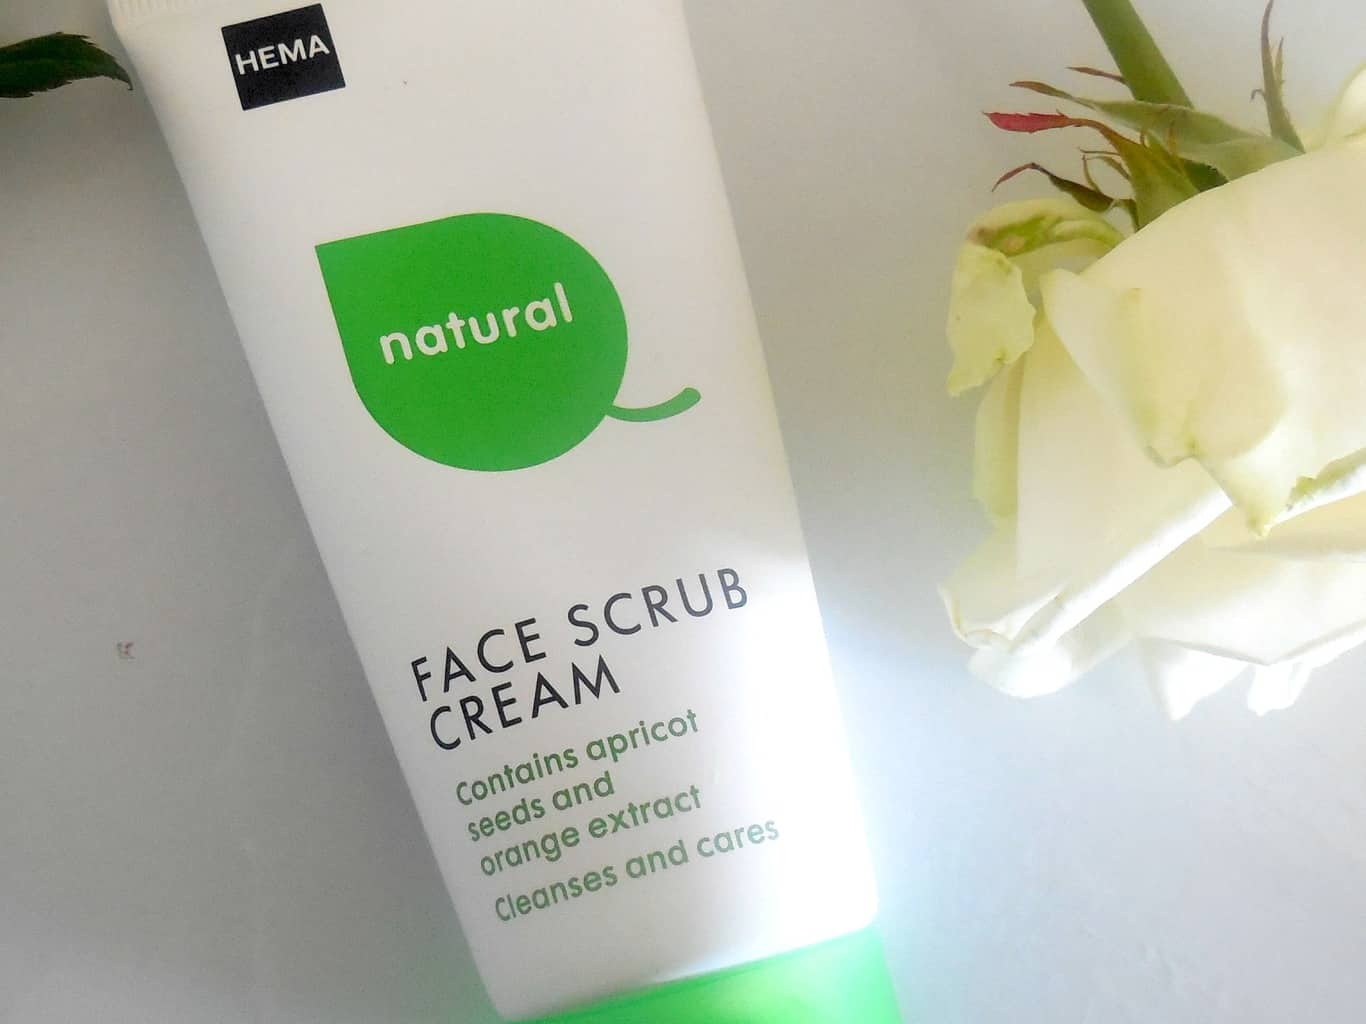 HEMA Natural Face Scrub Cream